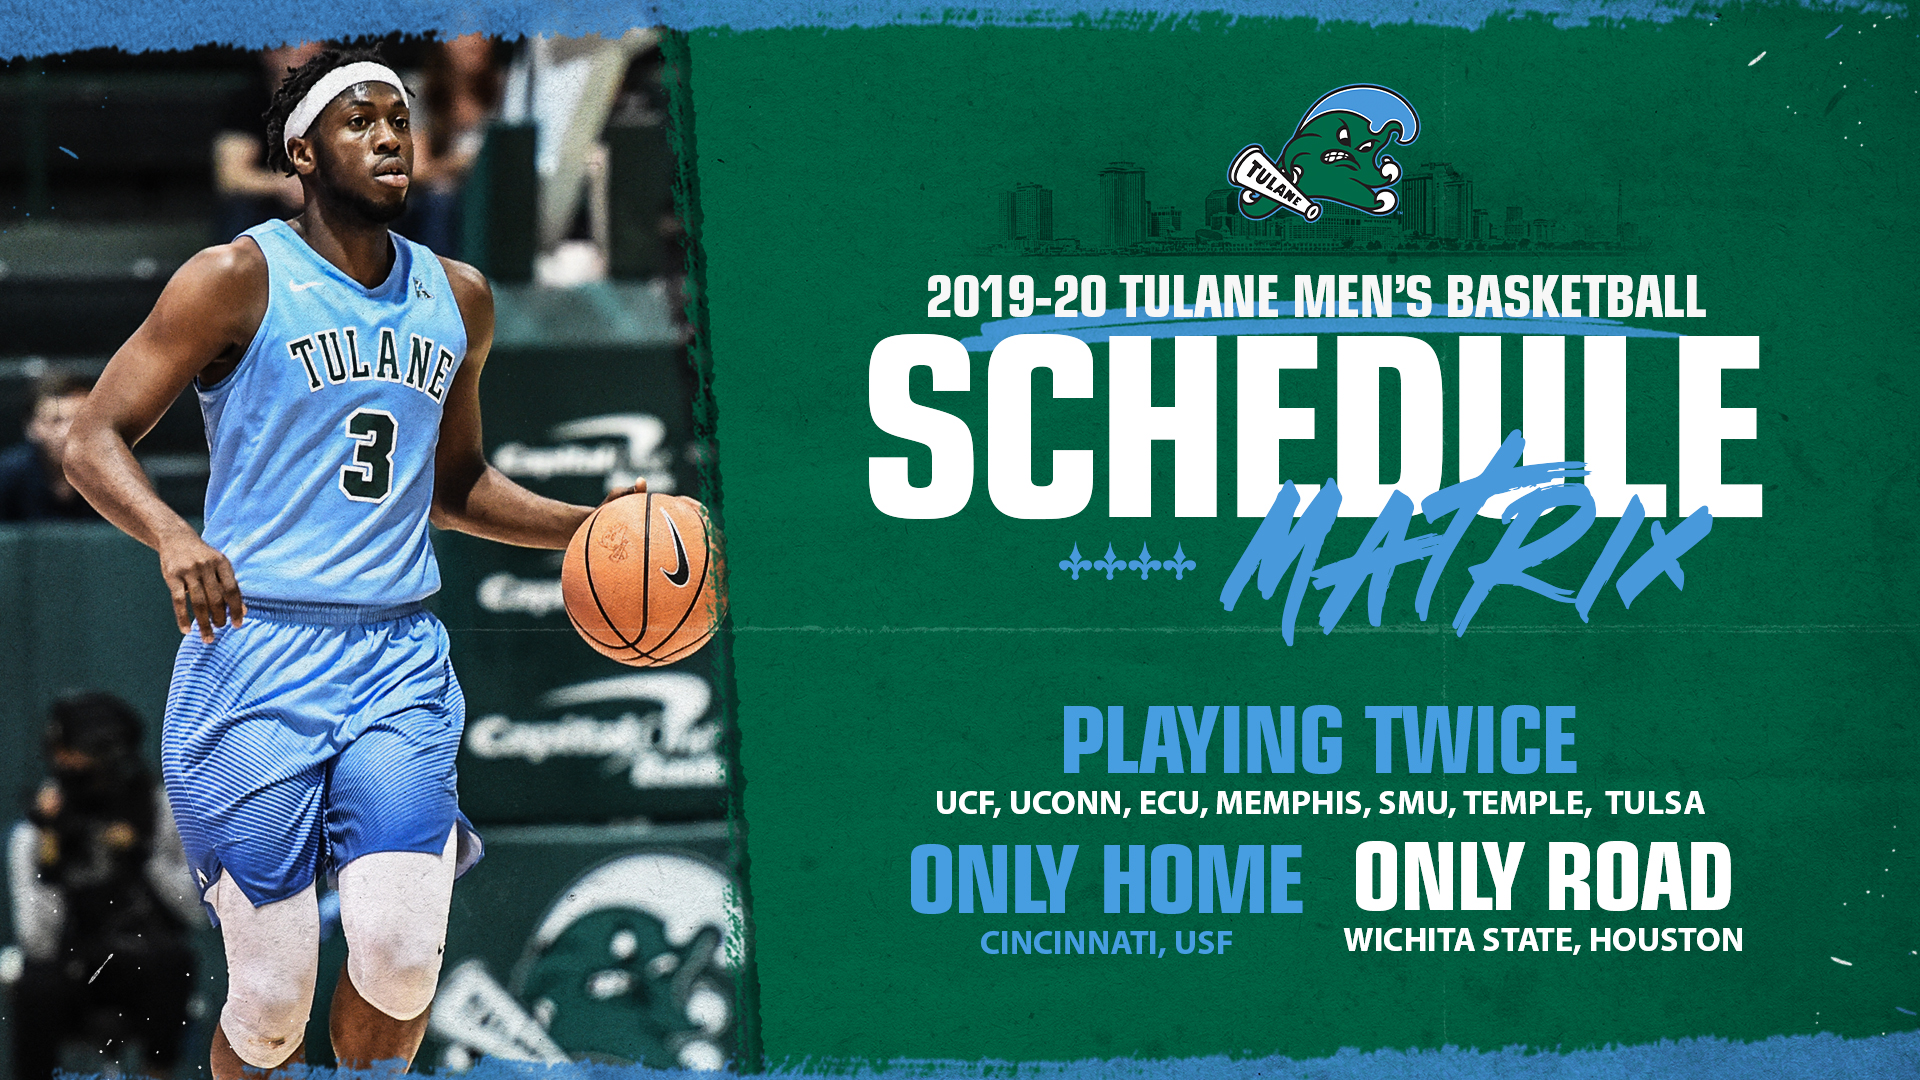 Tulane Baseball Schedule 2020 American Athletic Conference Unveils 2019 20 Men's Basketball